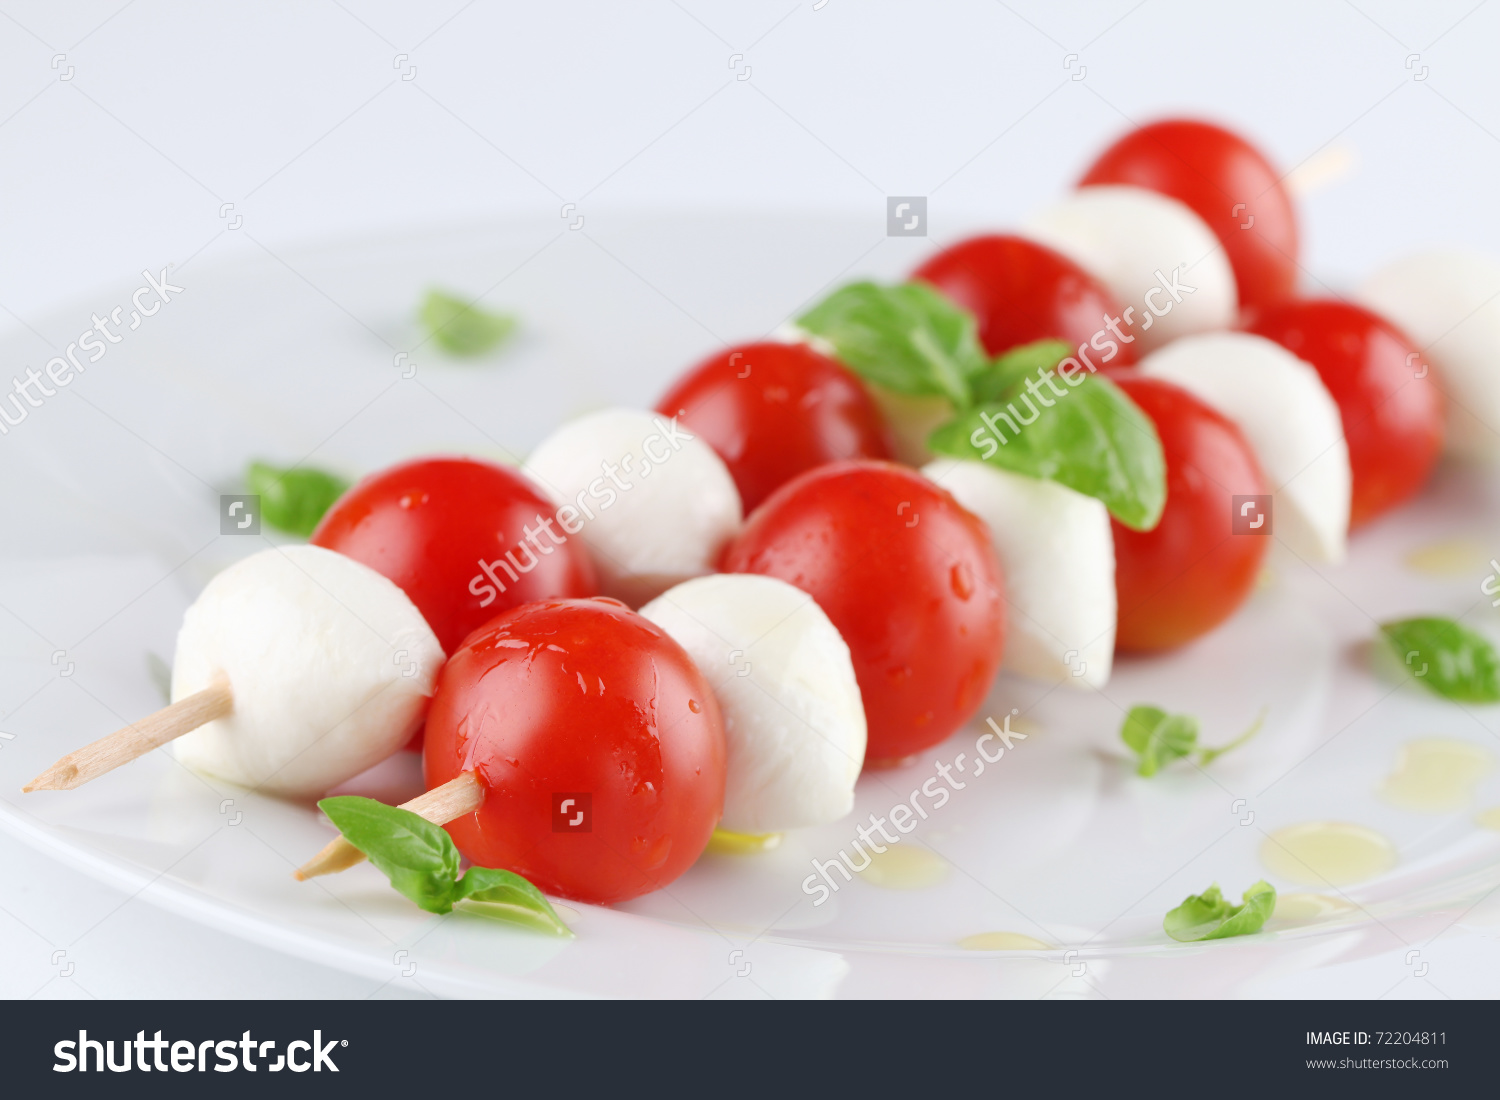 Caprese Salad Cherry Tomatoes Mozzarella On Stock Photo 72204811.